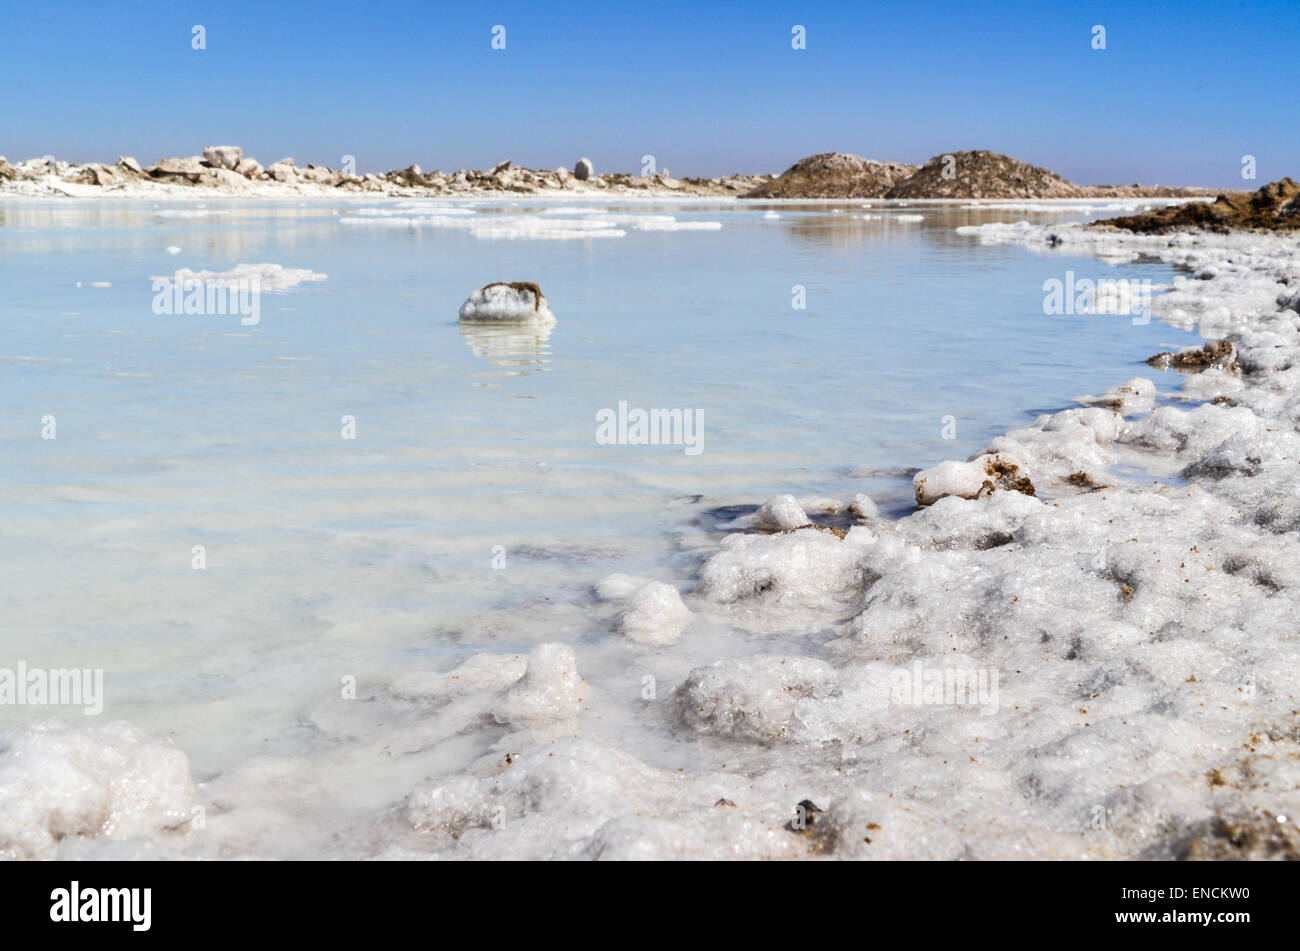 Salt works in Walvis Bay, Namibia, salt crystals - Stock Image